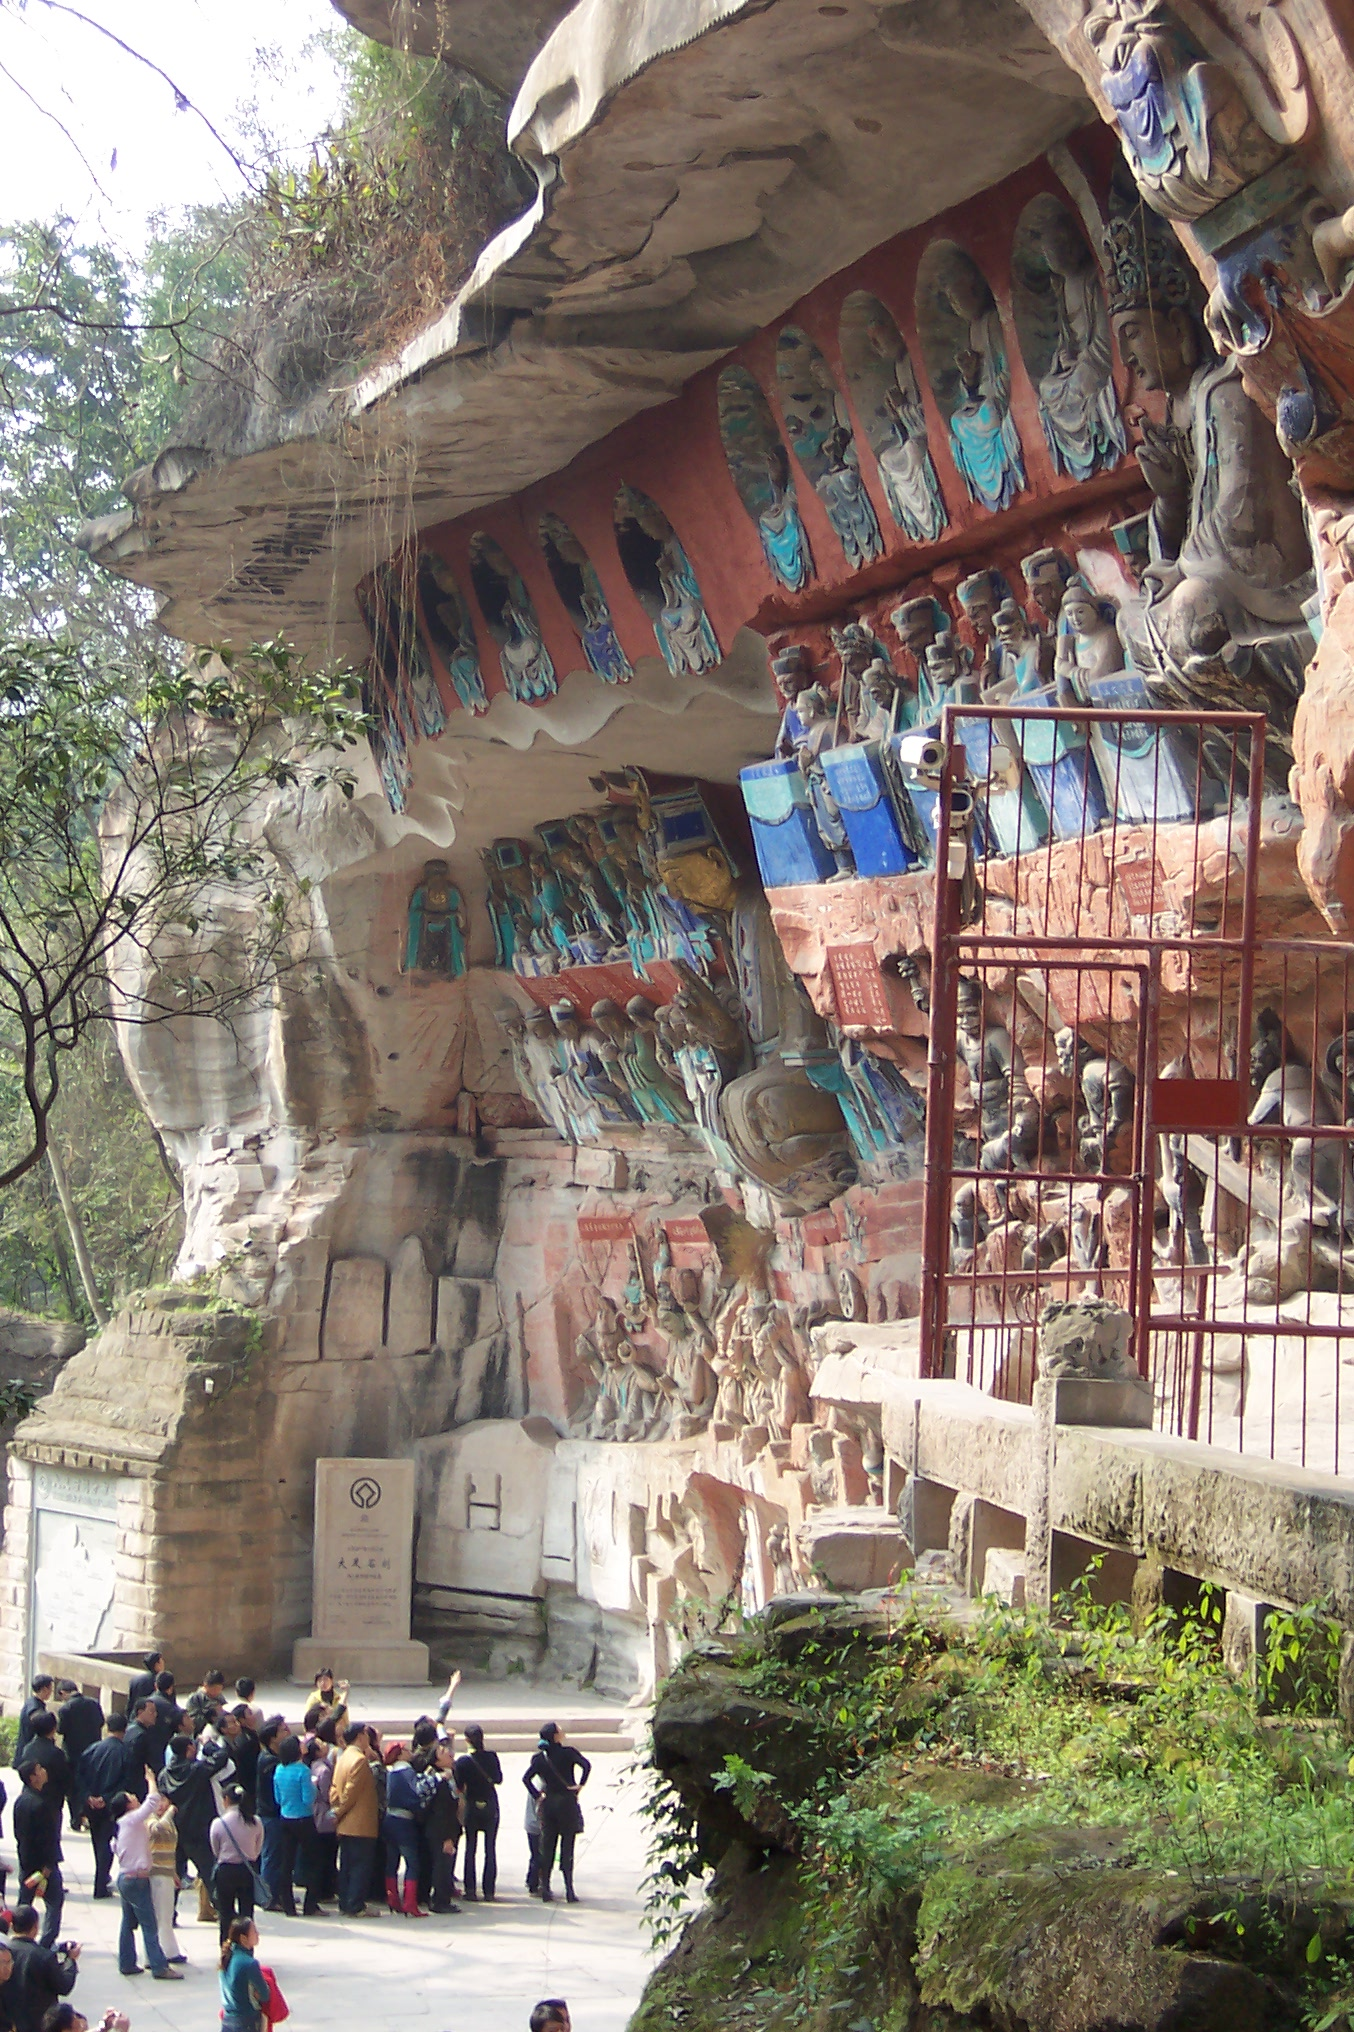 http://upload.wikimedia.org/wikipedia/commons/f/f5/Dazu_rock_carvings_baoding_18_layers_of_hell.JPG